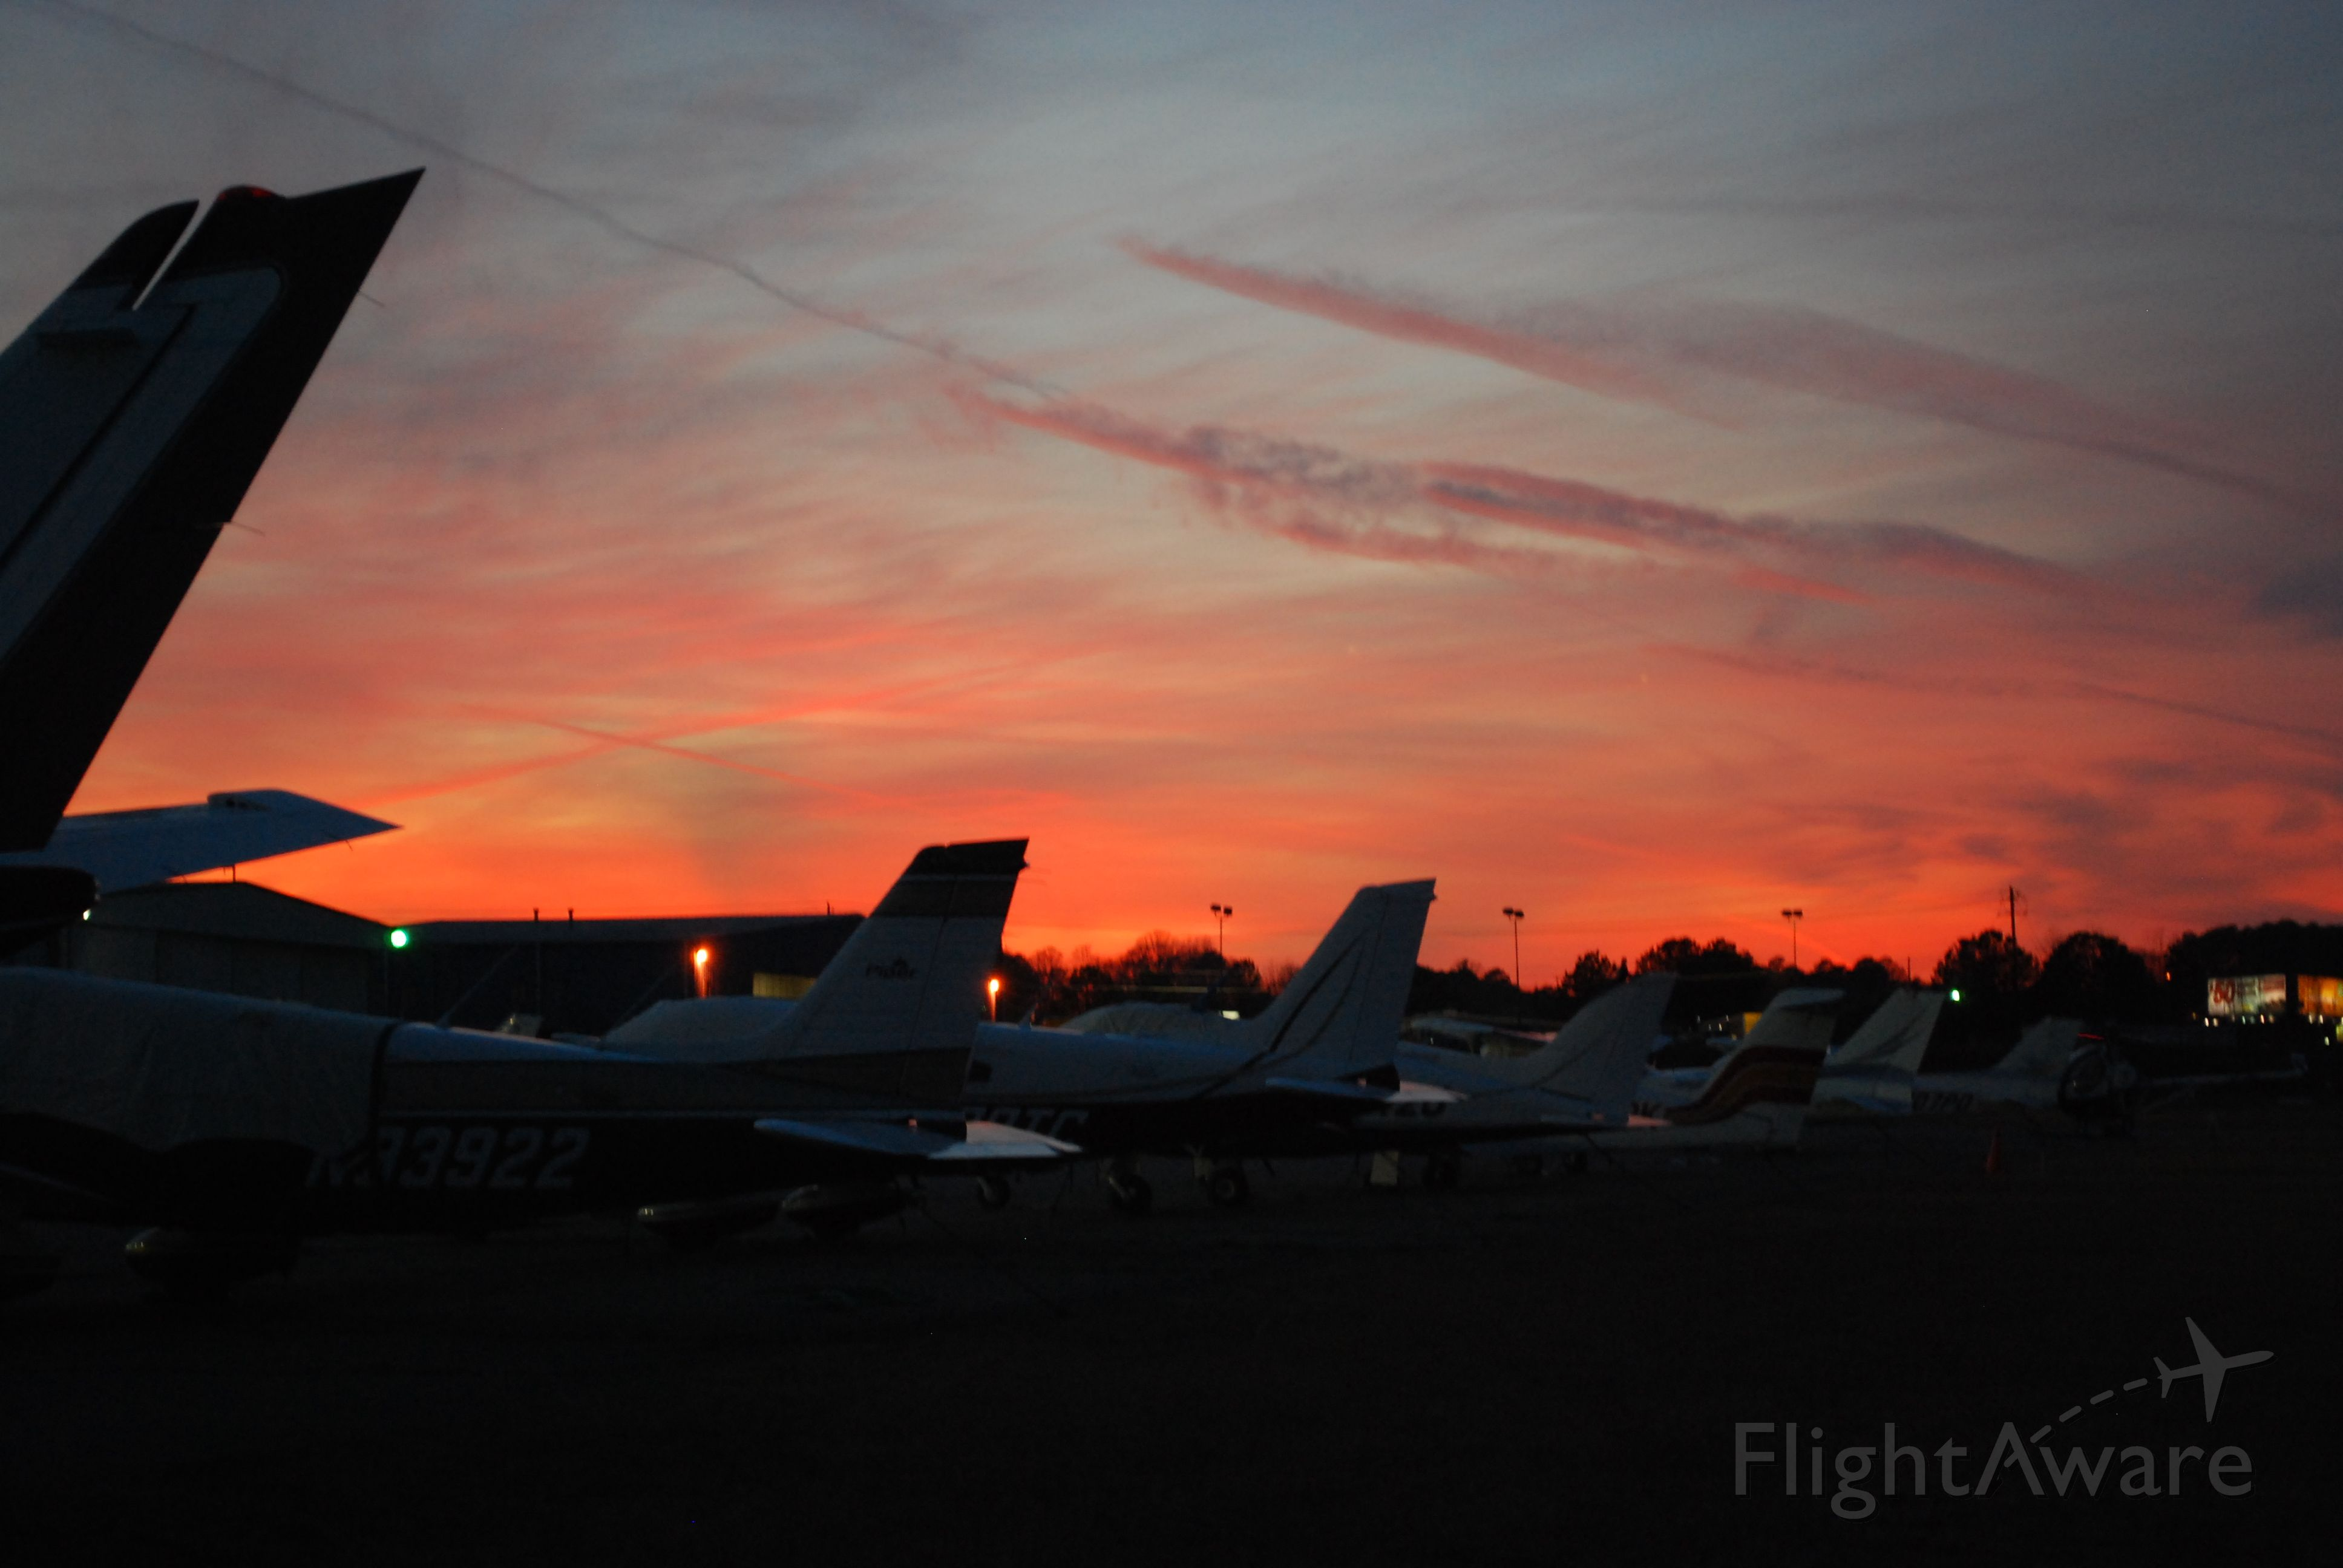 — — - Sunset at KRYY. con trails are fitting with the tails of aircraft in the picture